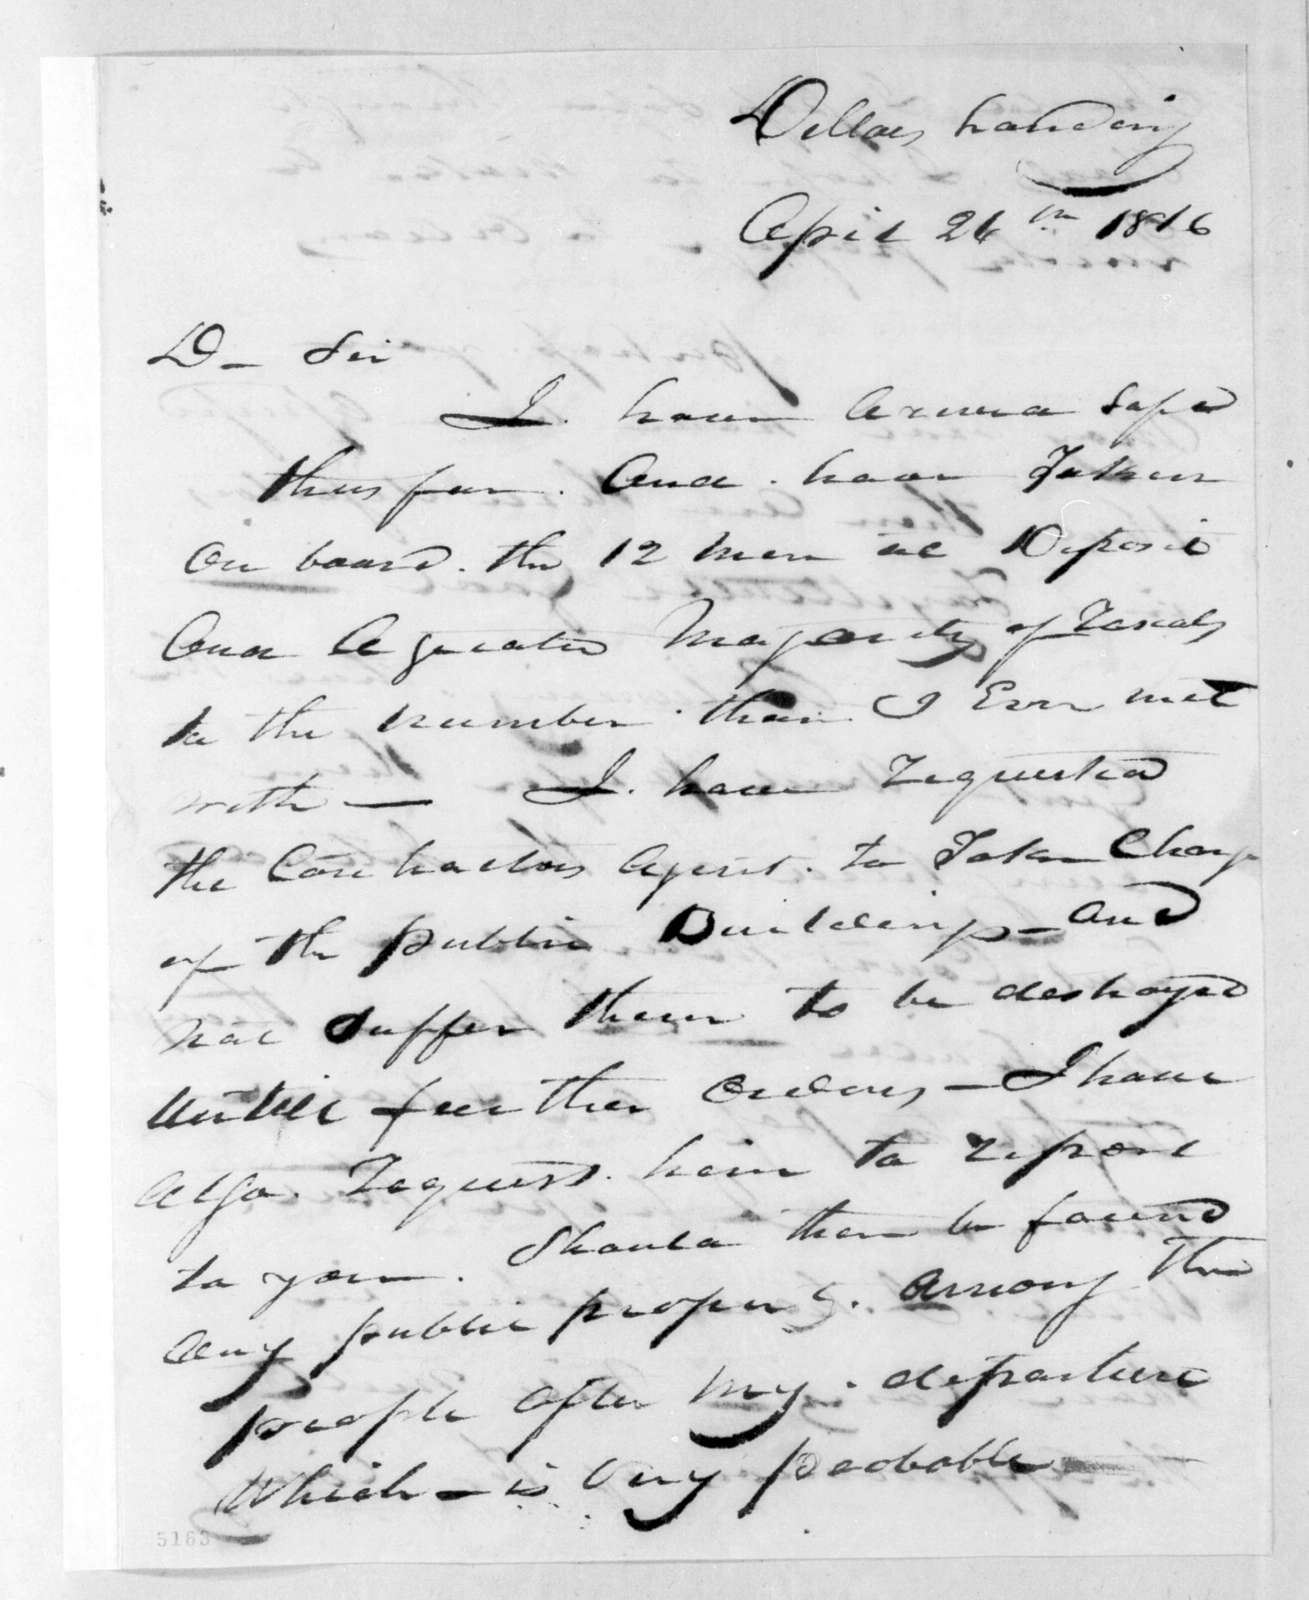 Francis Wells Armstrong to Robert Butler, April 26, 1816